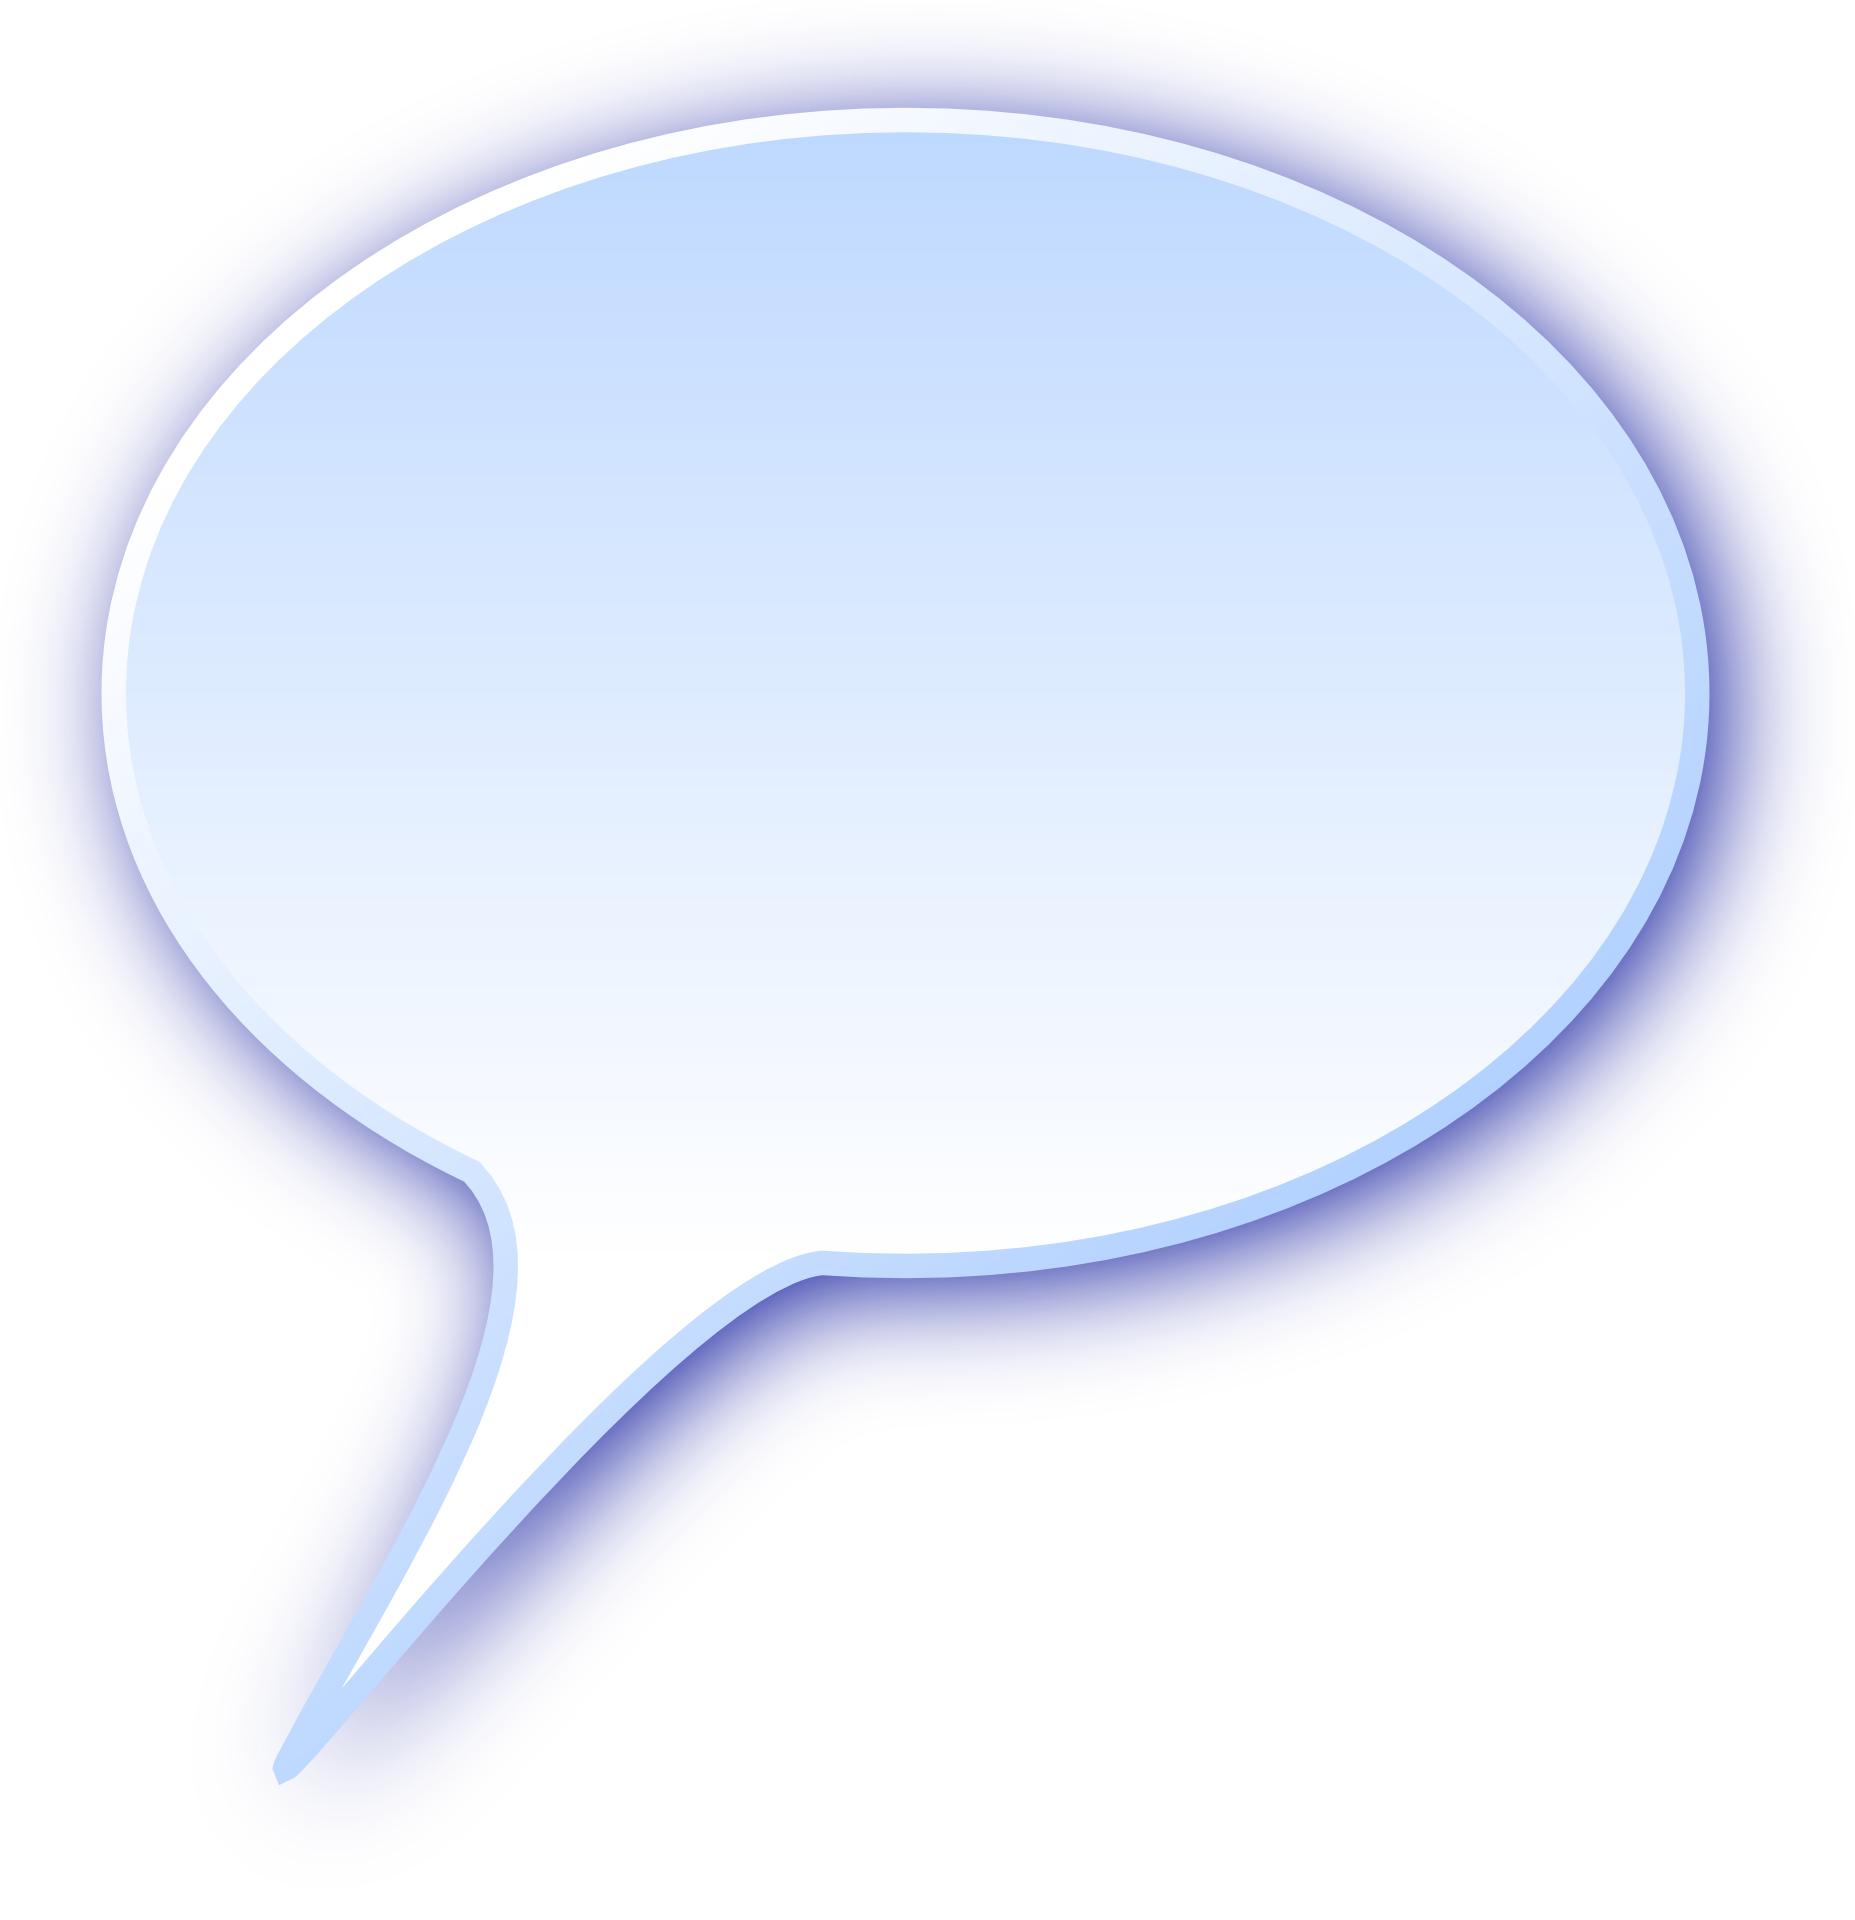 Light-blue chat bubbles vector